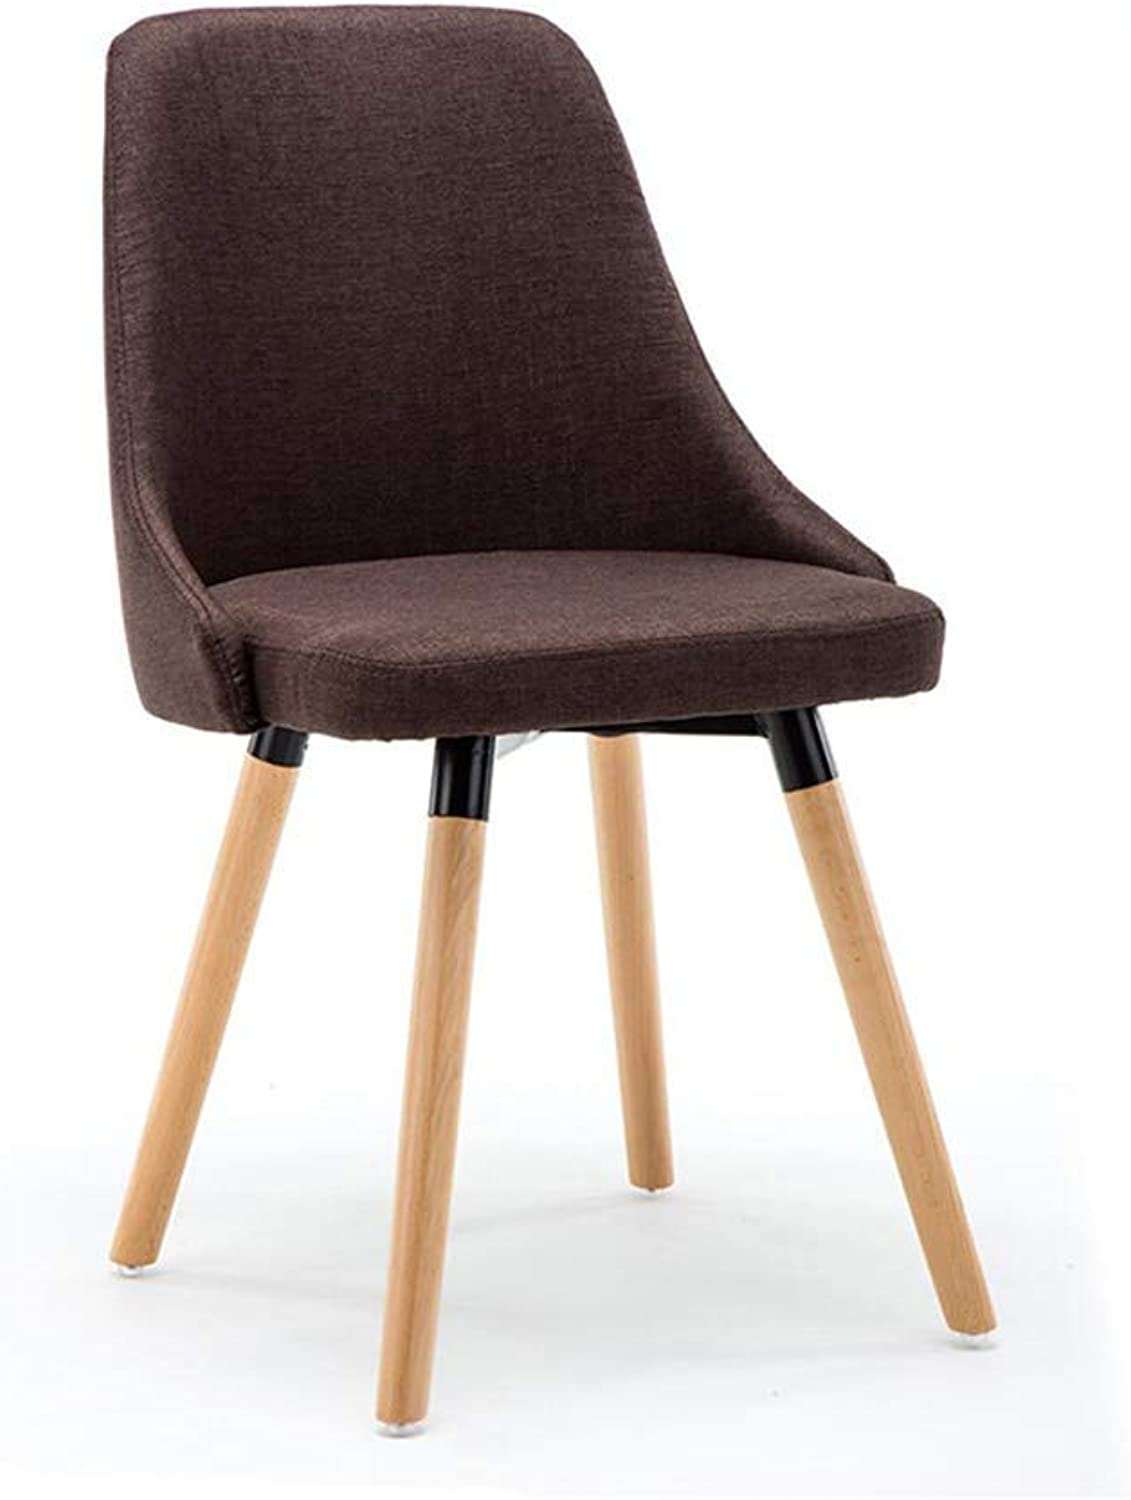 Bar Stools, High Stool, Wooden Legs Upholstered Seat Backrest Breakfast Home Kitchen Cafe Chairs, One Piece Two Pieces for Bar Kitchen Restaurant Living Room Cafe (color   Brown)